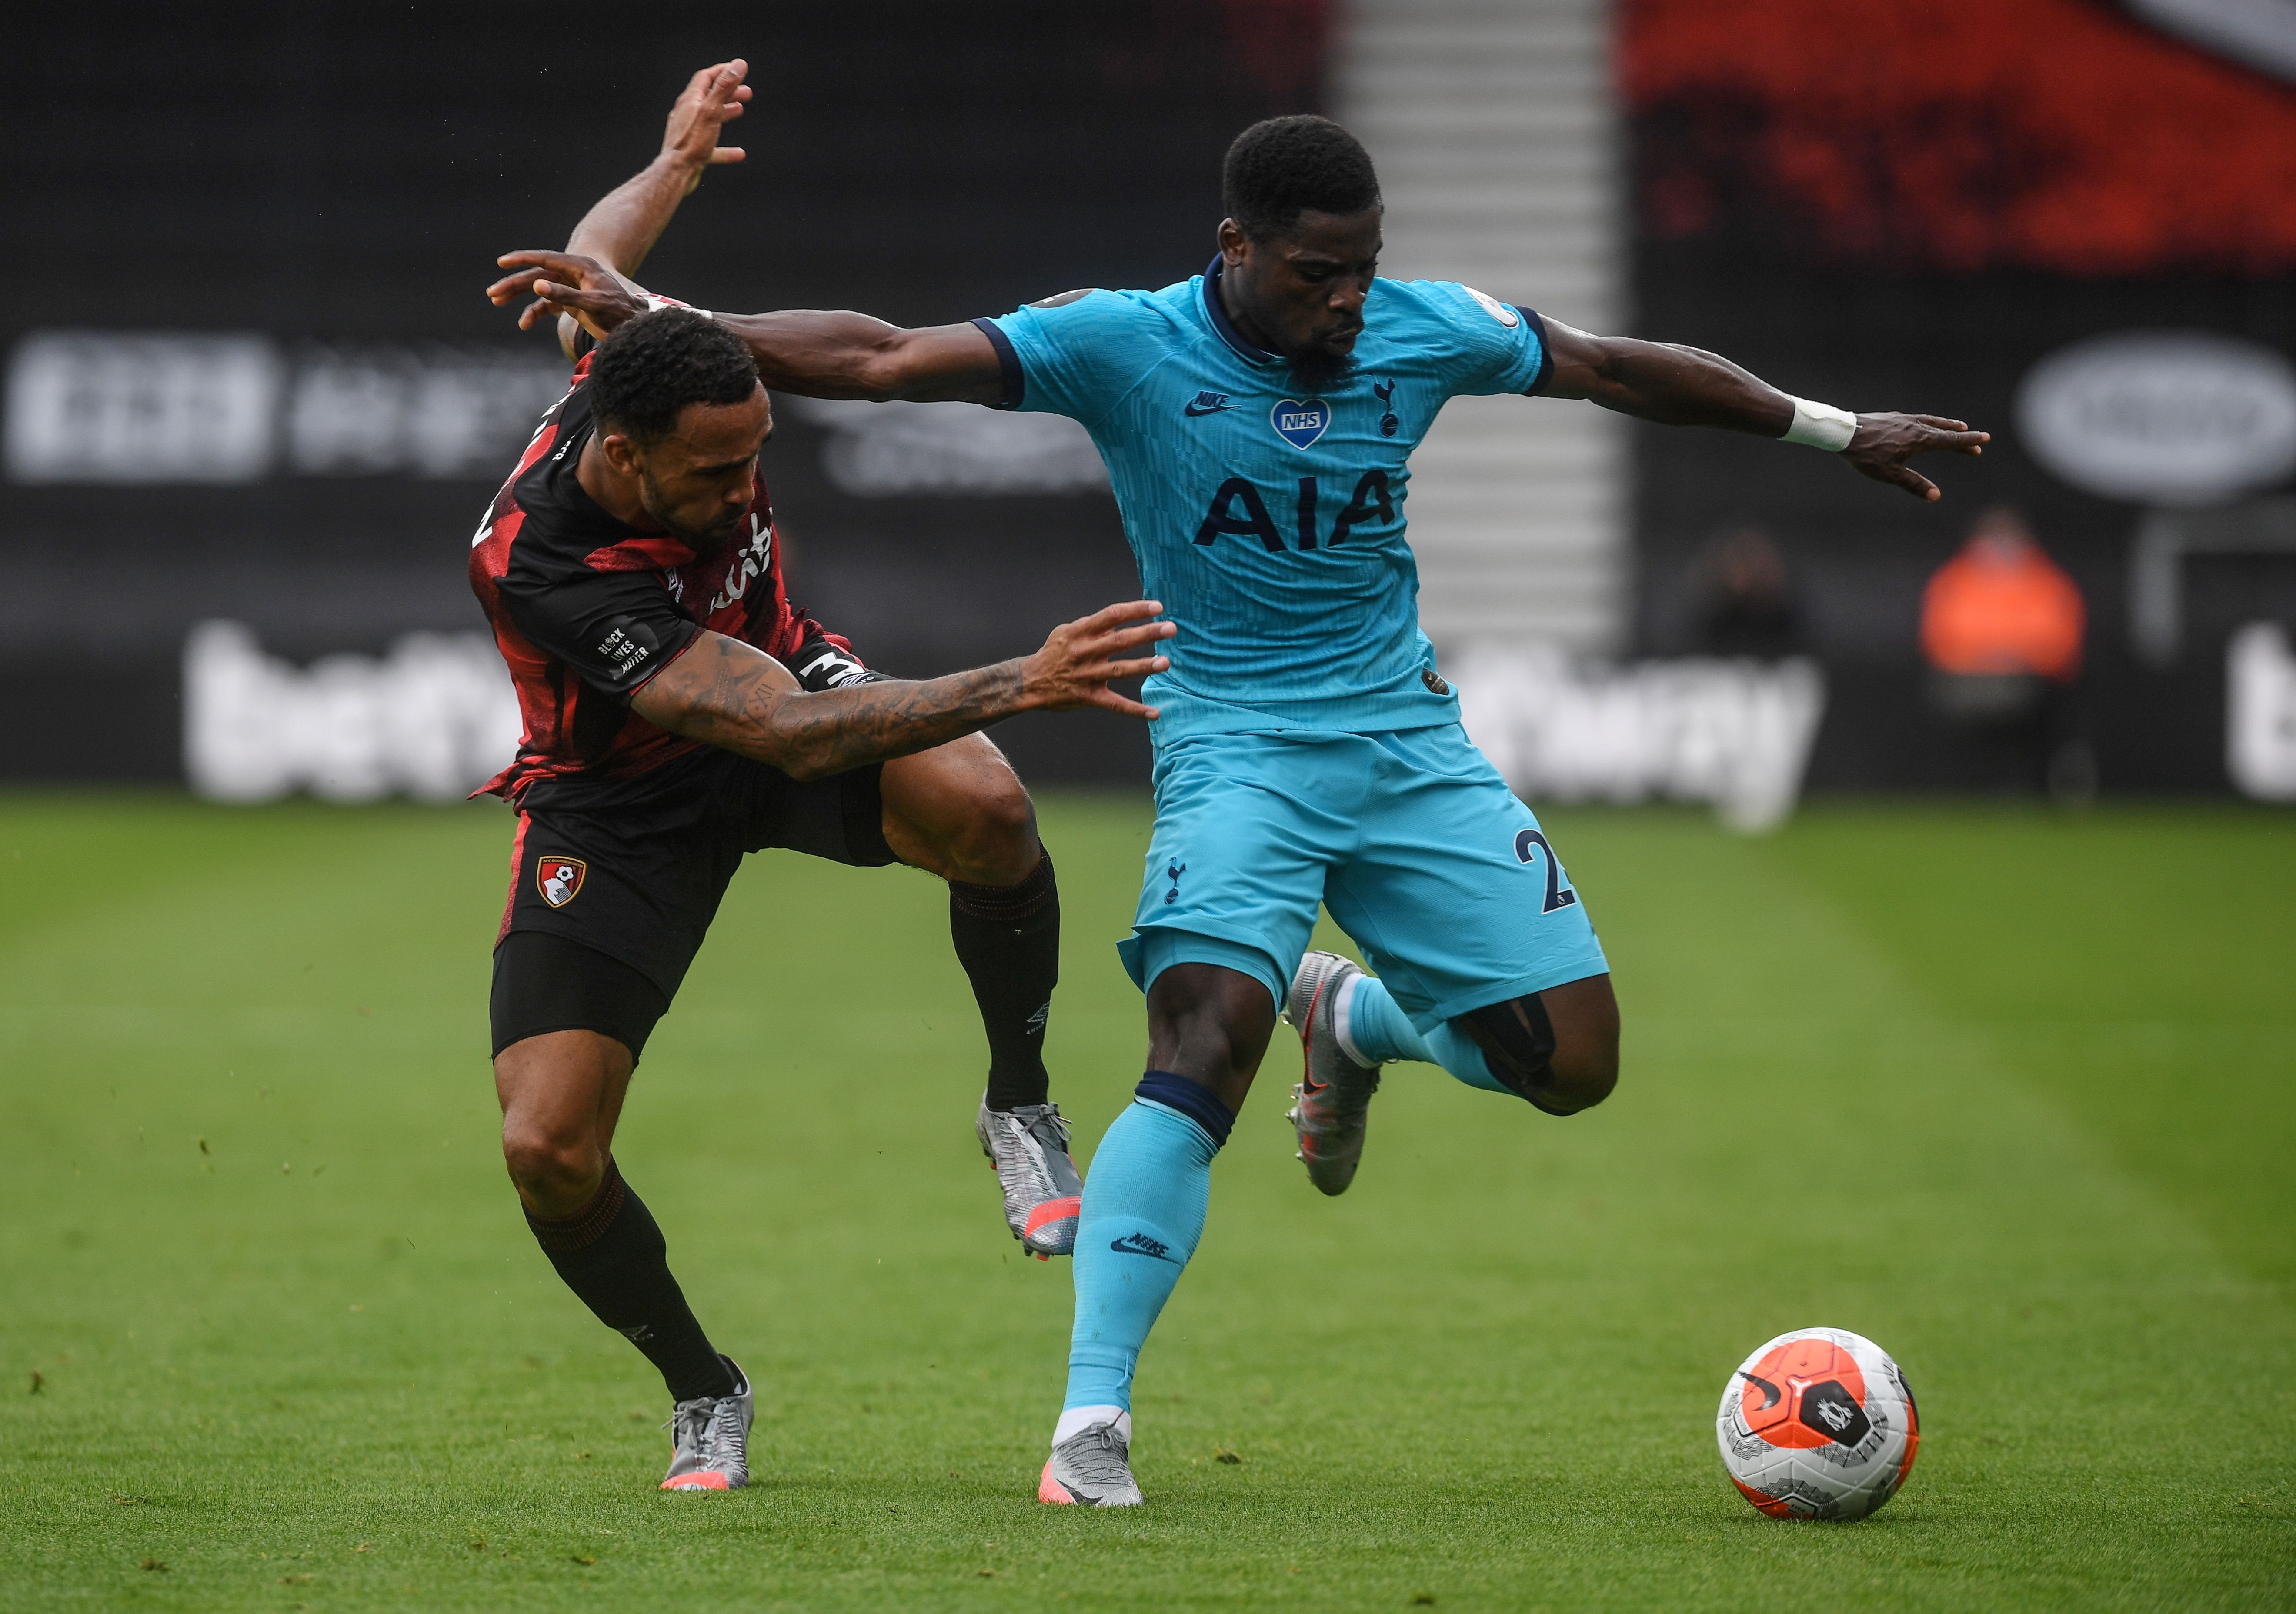 Wolves keeping a keen eye on Tottenham Hotspur's Serge Aurier who is in action in the picture